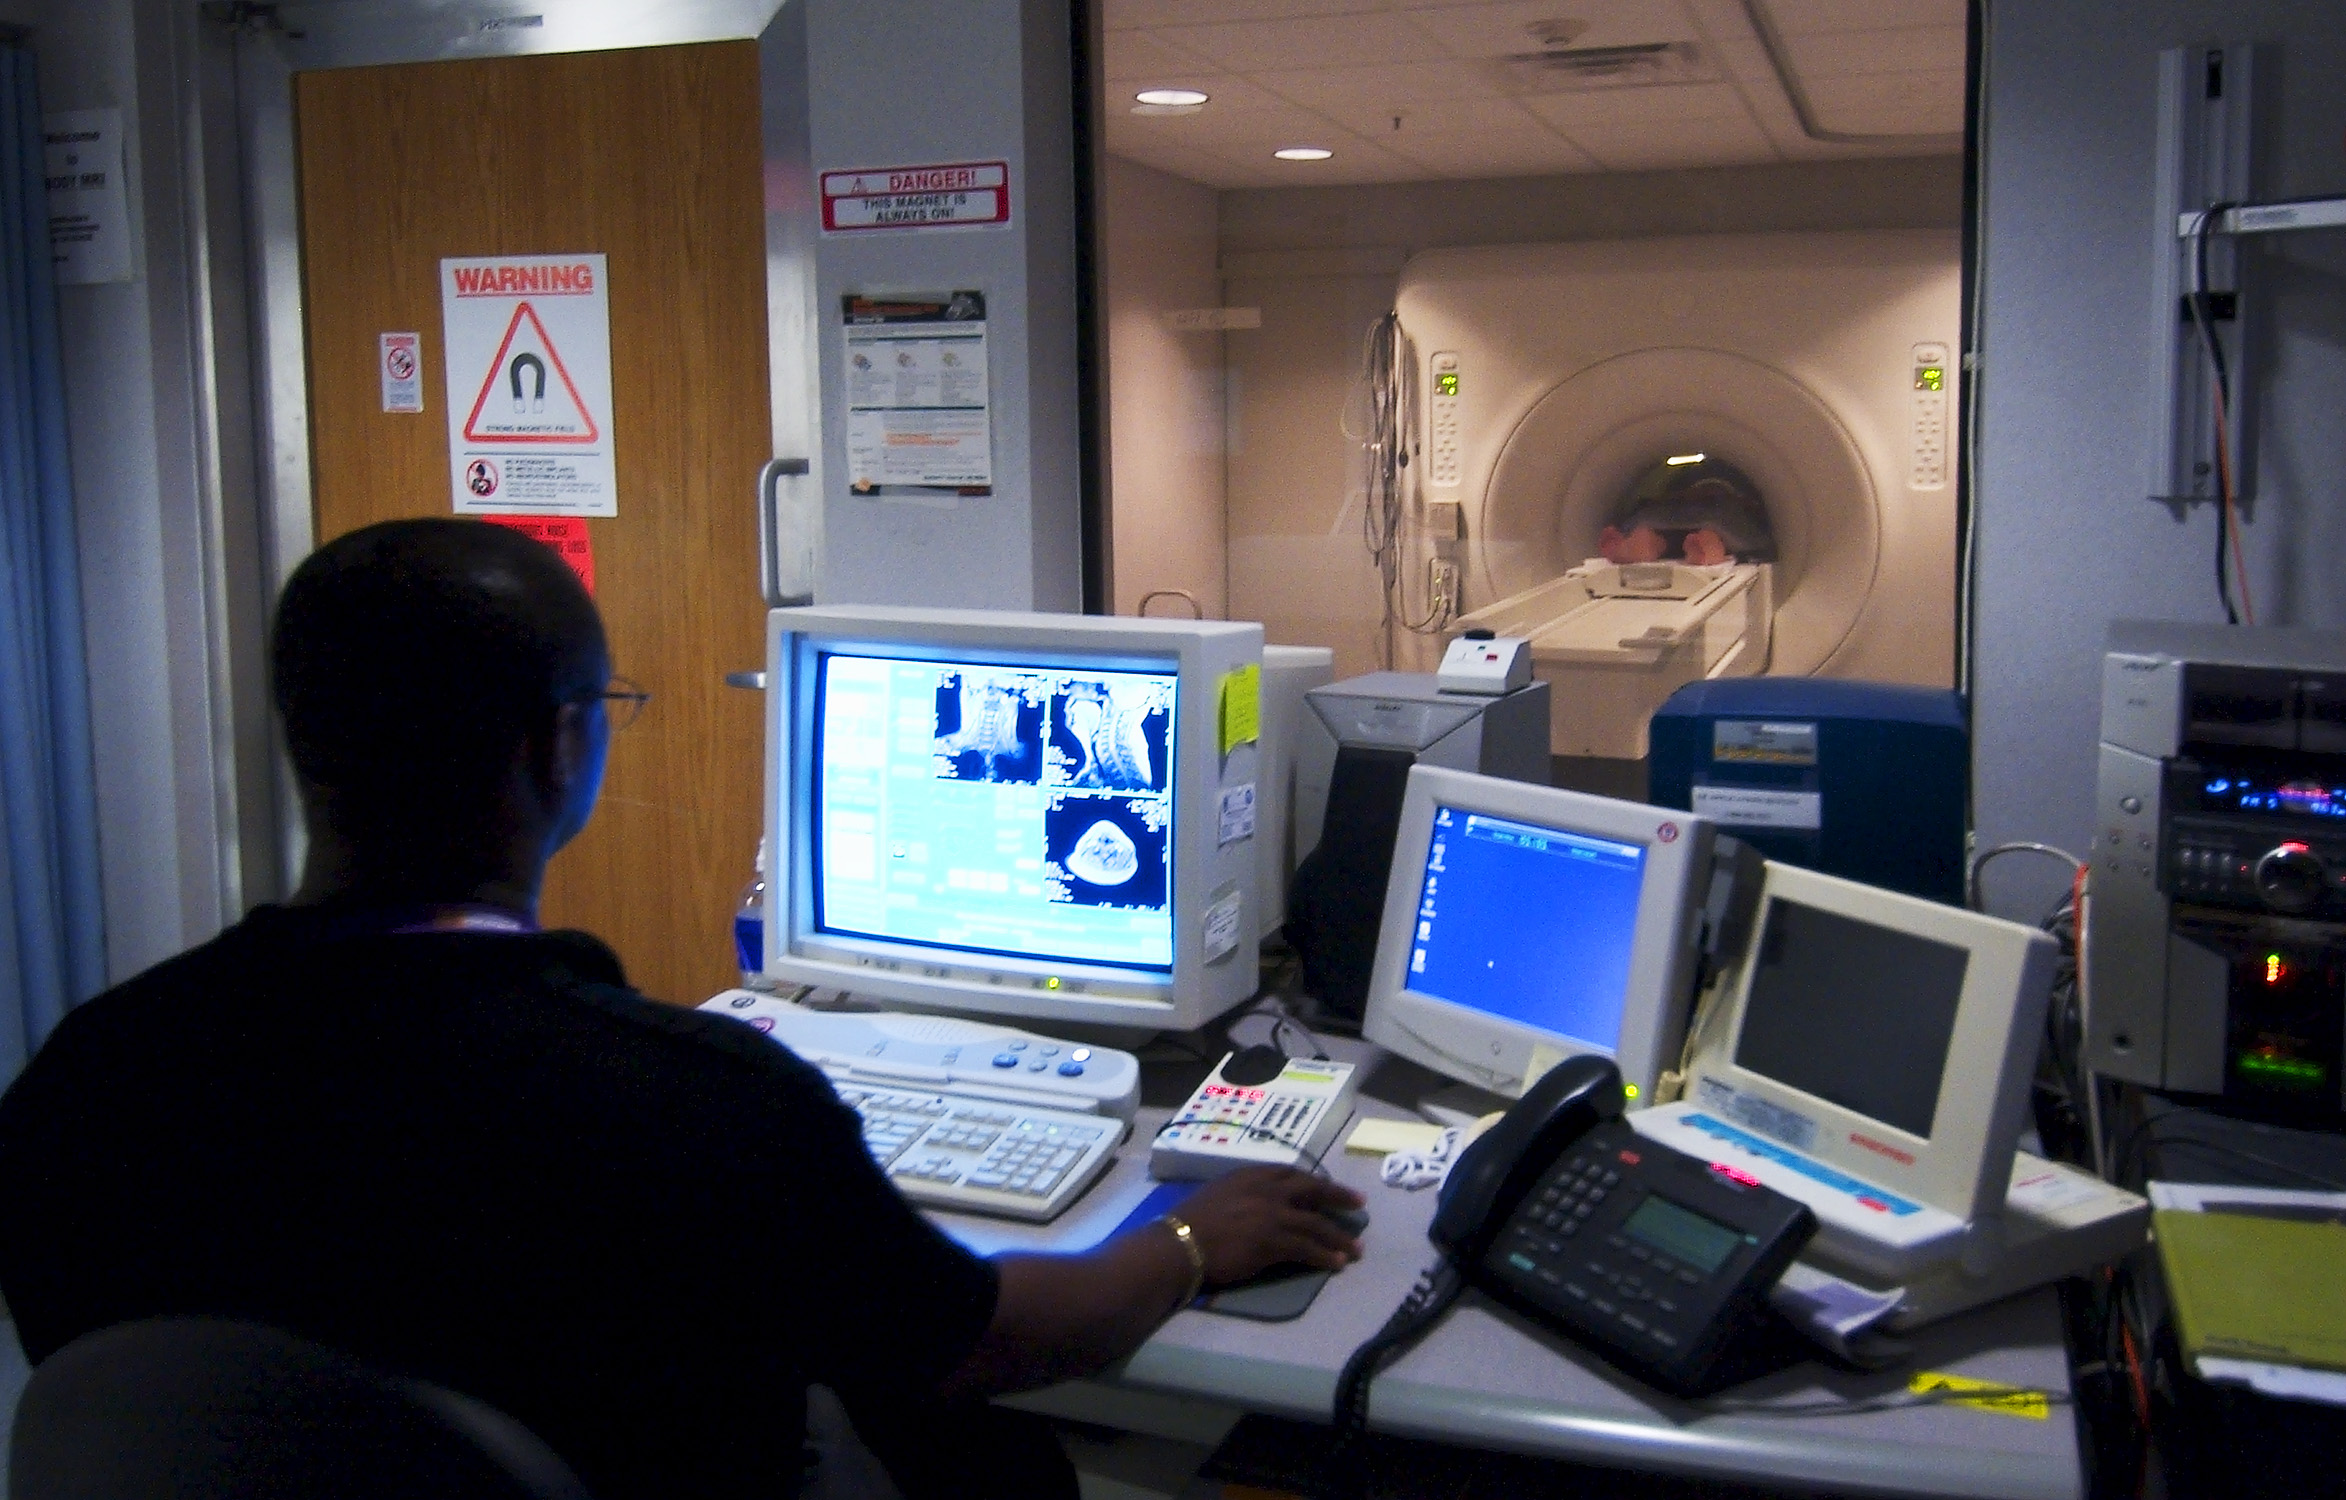 MRI technologist in a control room.